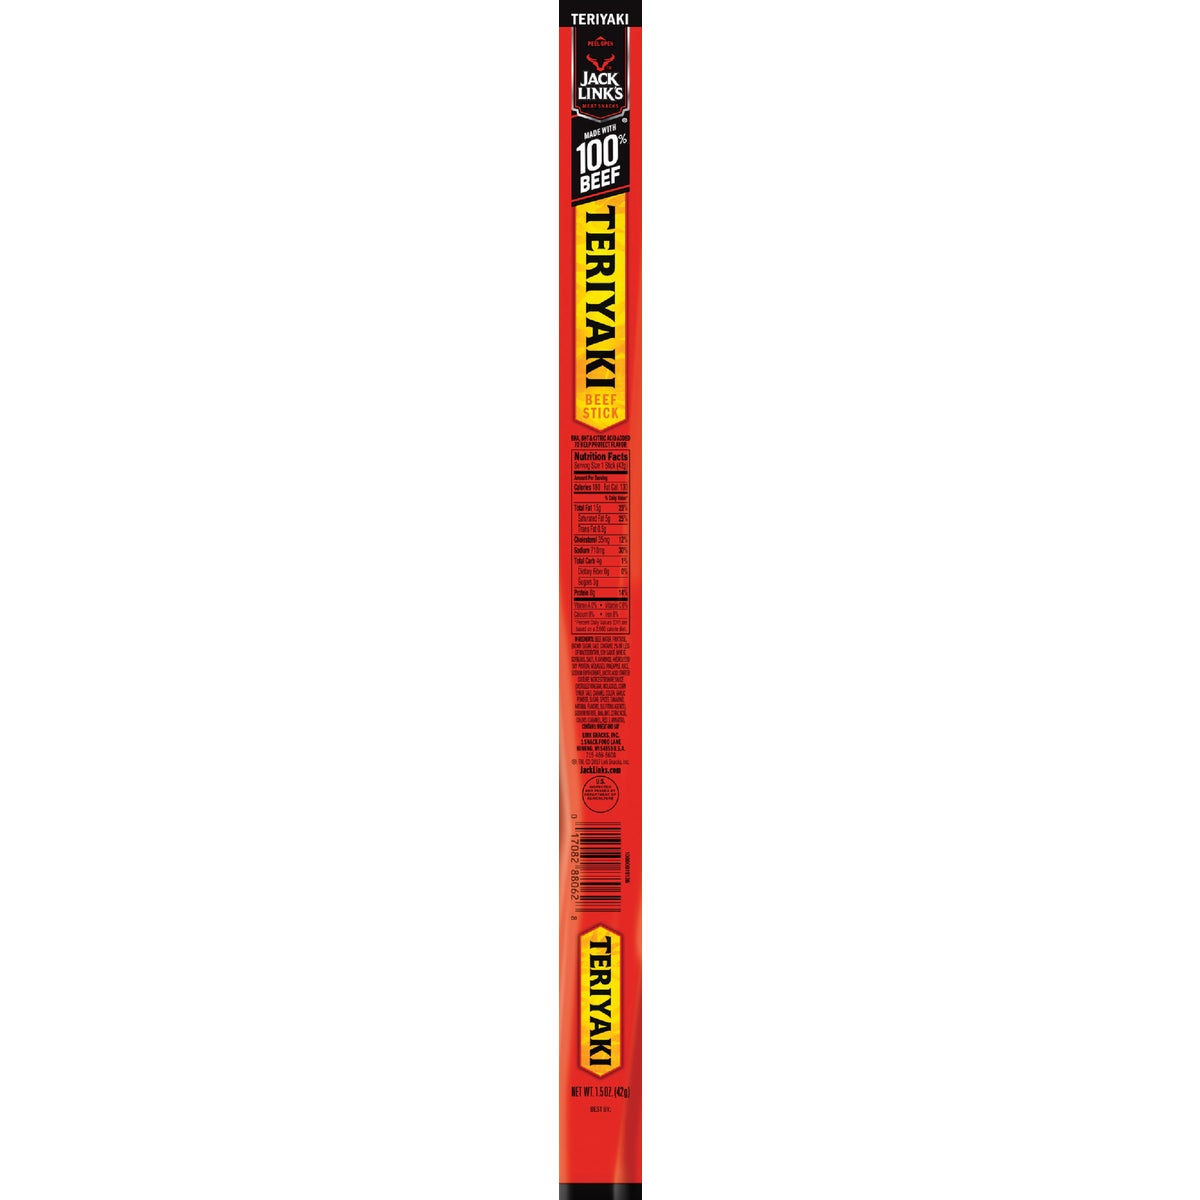 1.5OZ TERYAKI BEEF STICK - 88262 by Jack Links